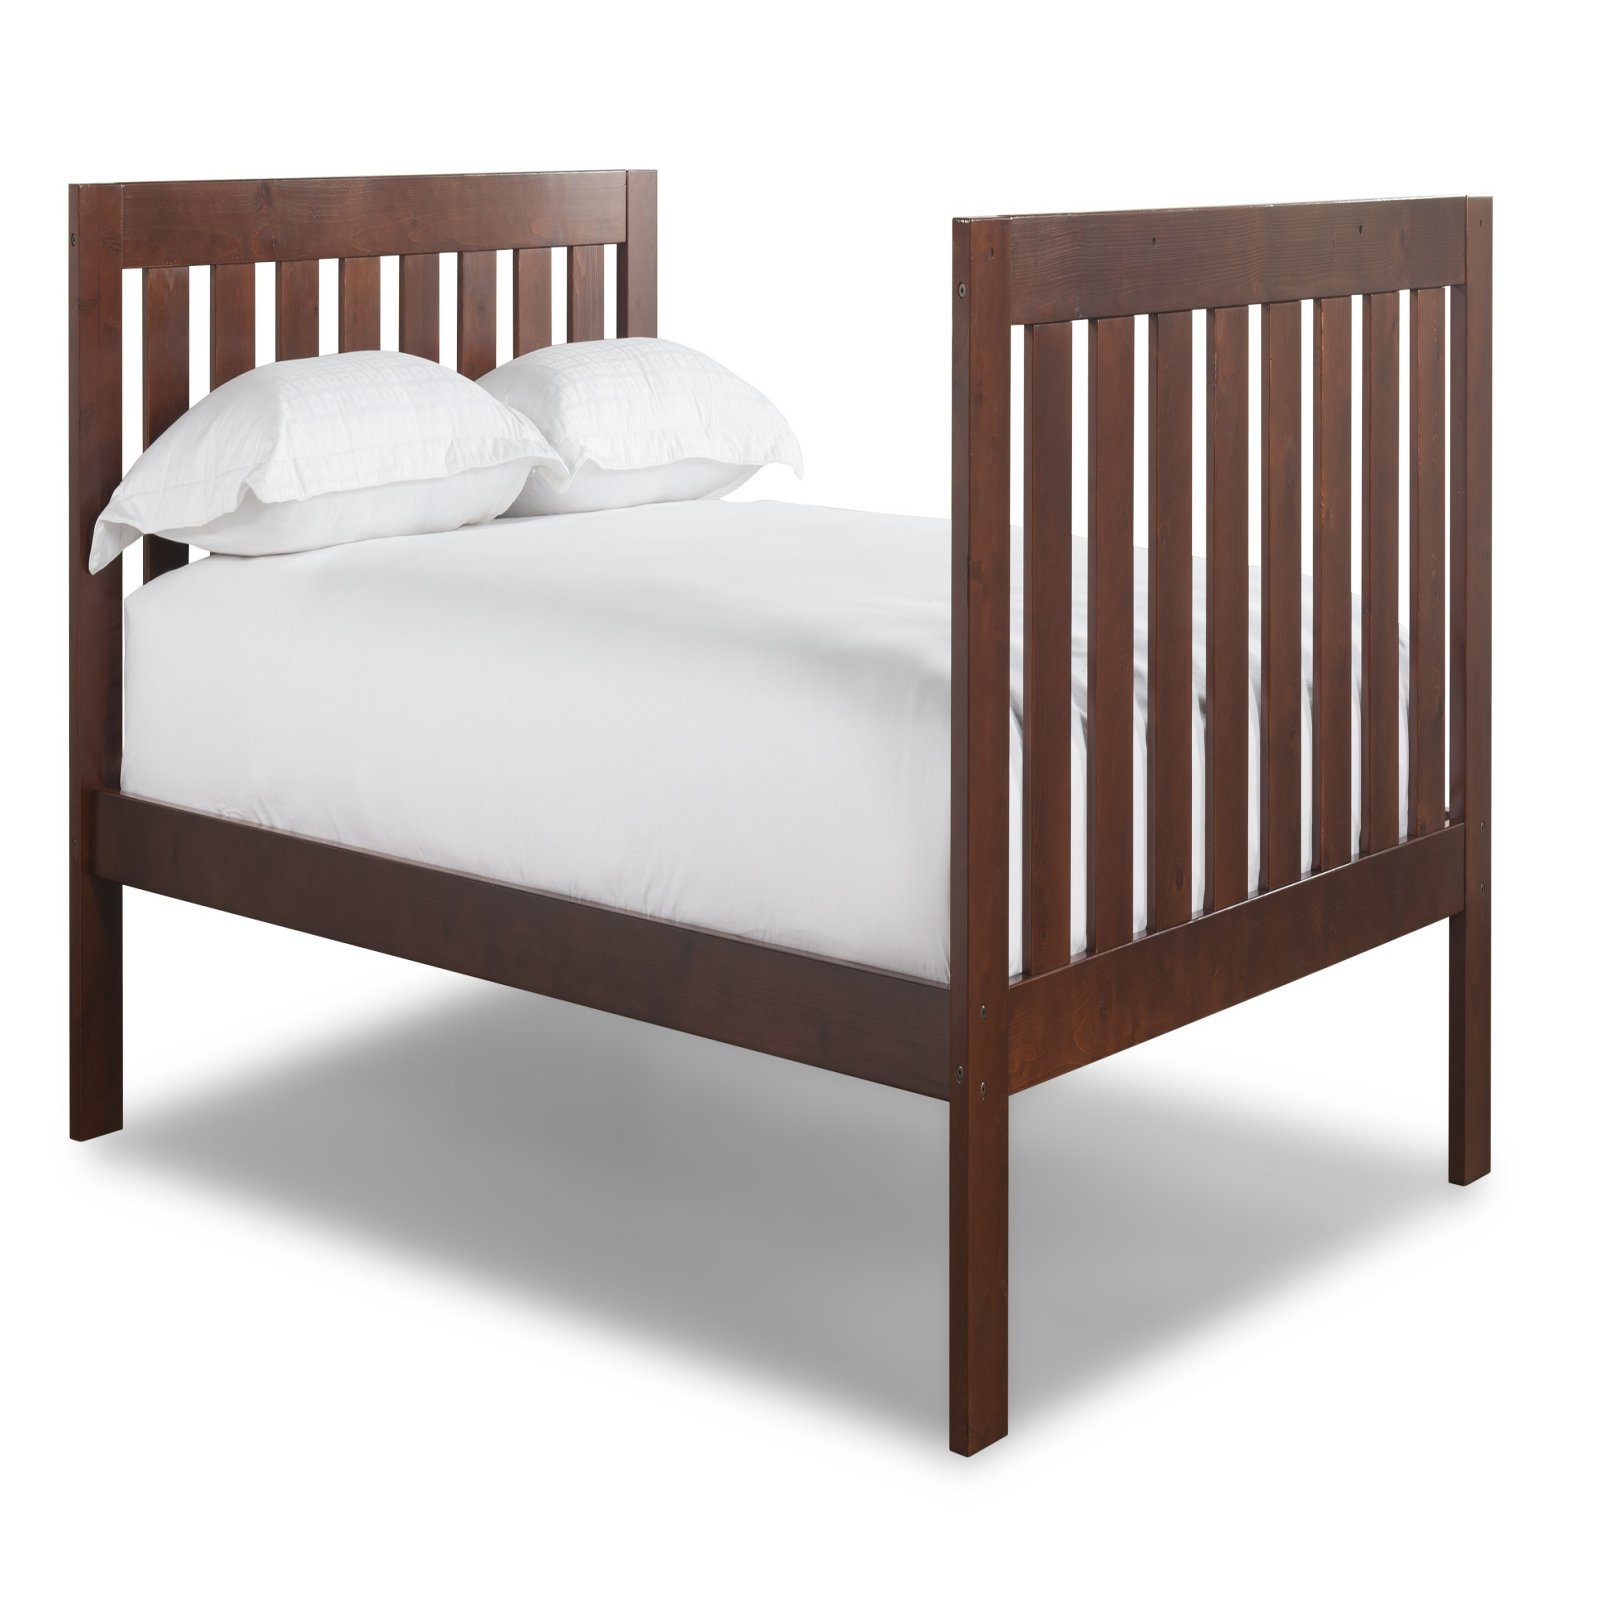 Canwood Lakecrest Panel Bed